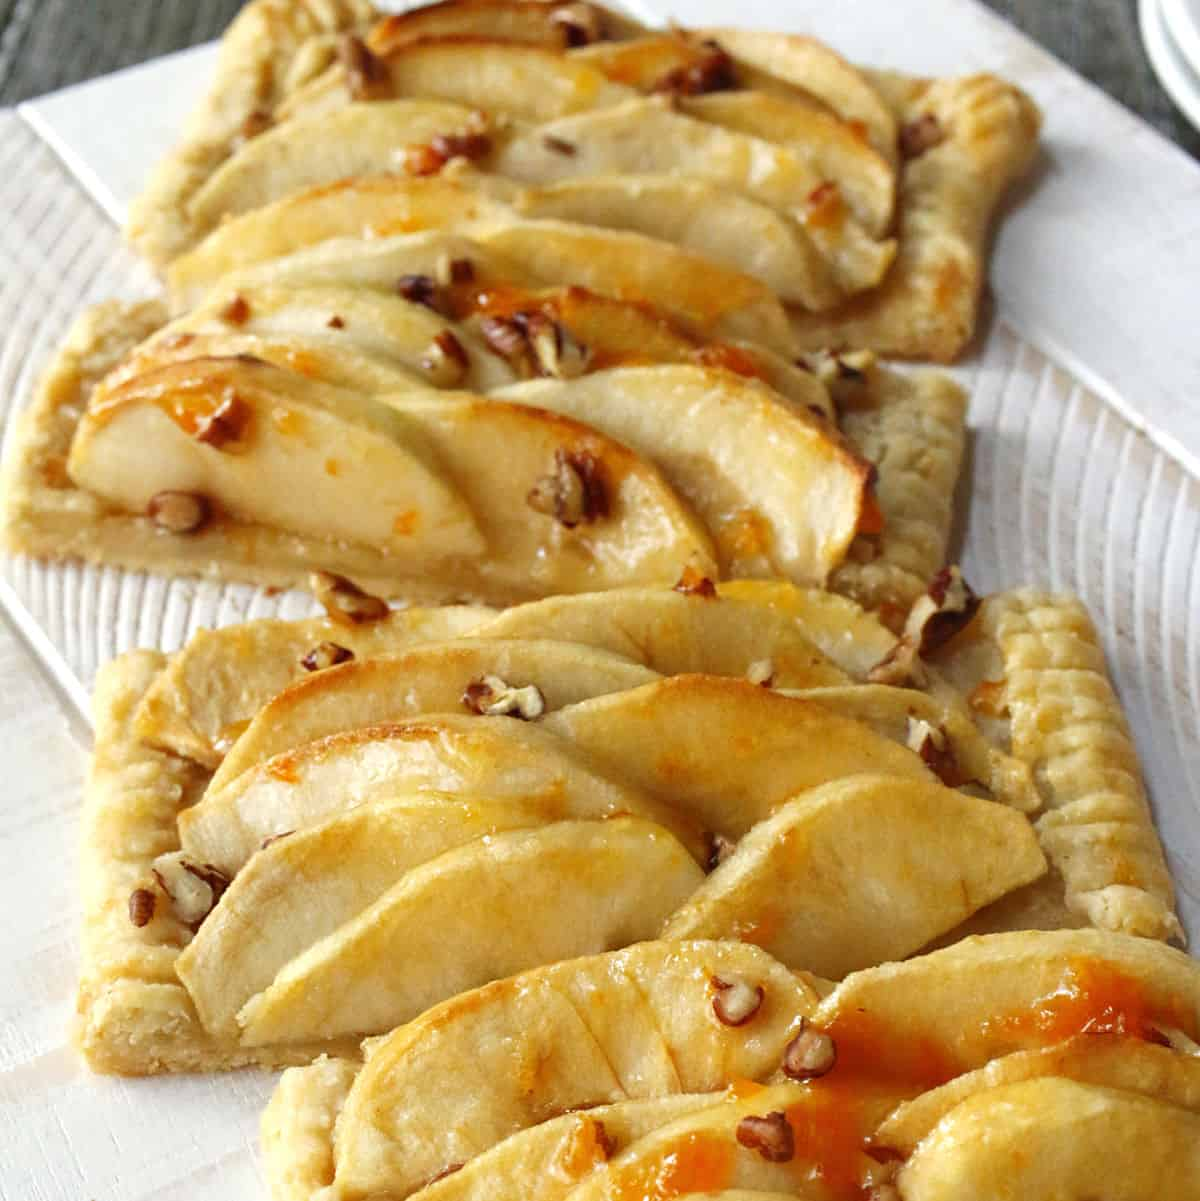 Slices of an apple tart with pecans.